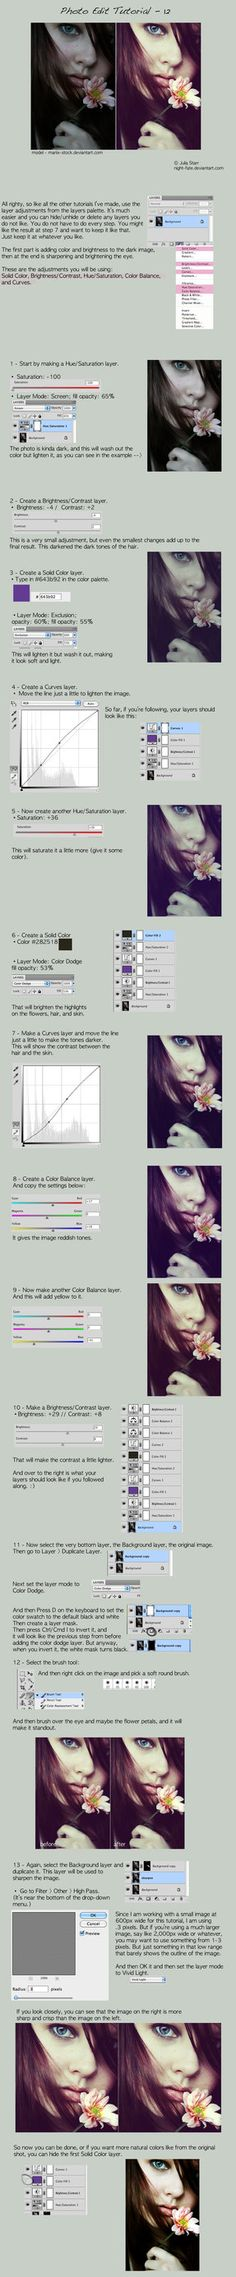 photo edit tutorial - 12